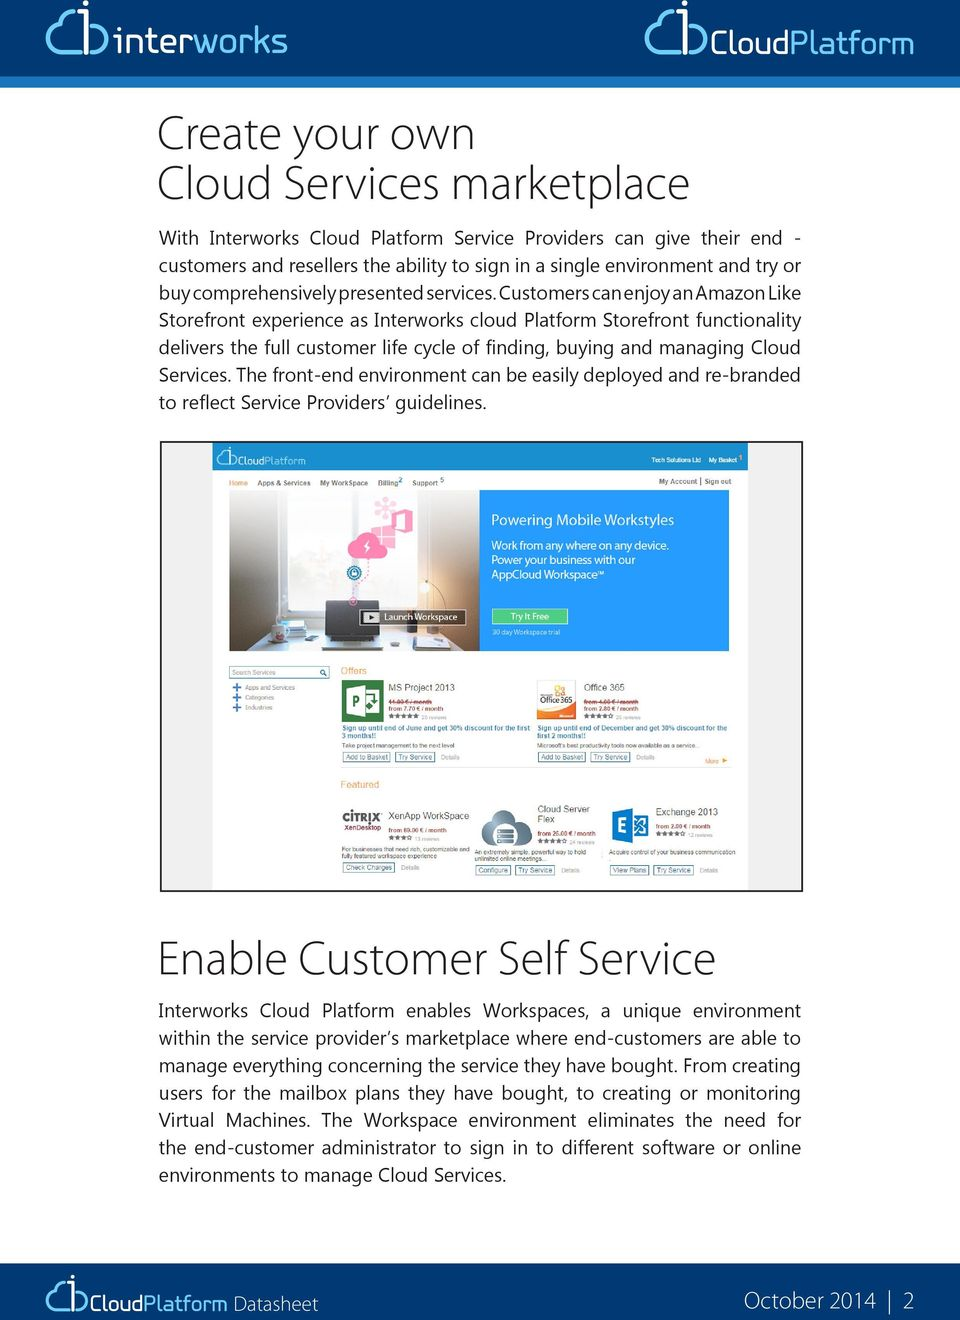 Customers can enjoy an Amazon Like Storefront experience as Interworks cloud Platform Storefront functionality delivers the full customer life cycle of finding, buying and managing Cloud Services.